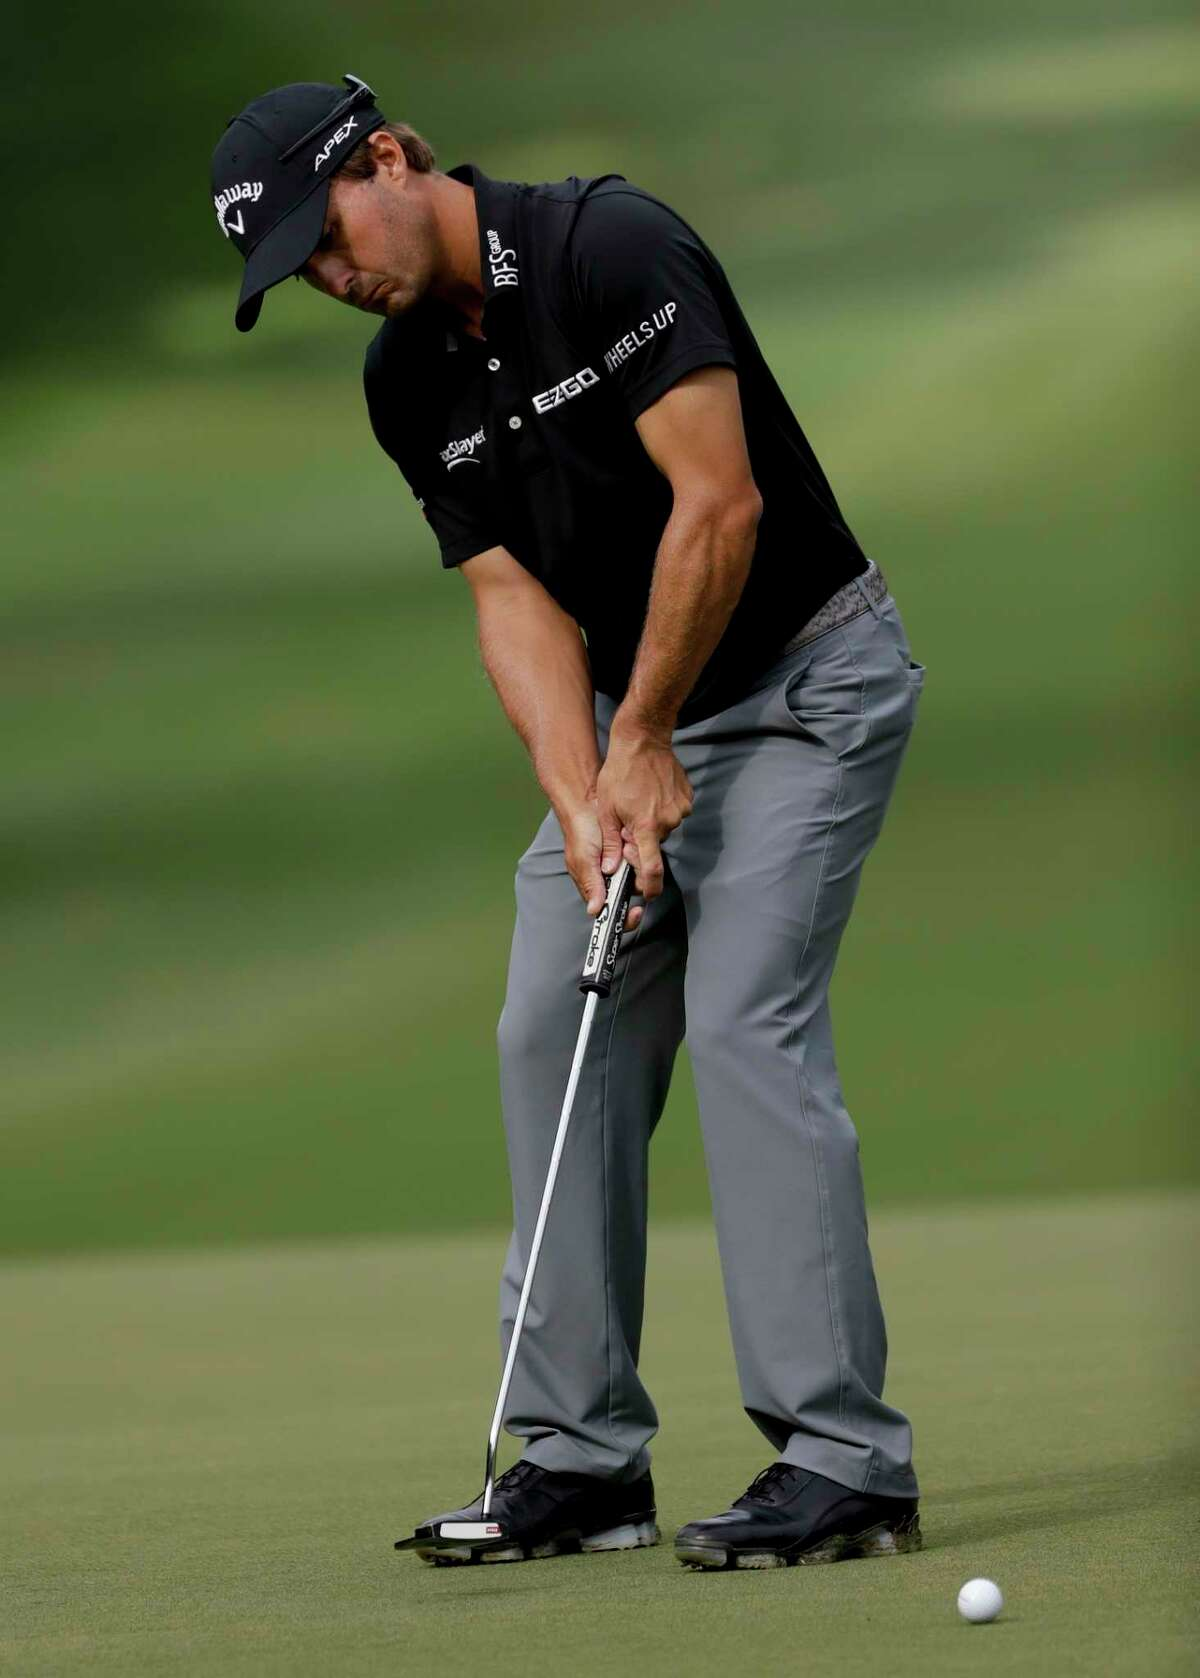 Kevin Kisner putts on the 12th hole during the second round of the PGA Championship golf tournament at the Quail Hollow Club Friday, Aug. 11, 2017, in Charlotte, N.C. (AP Photo/John Bazemore)